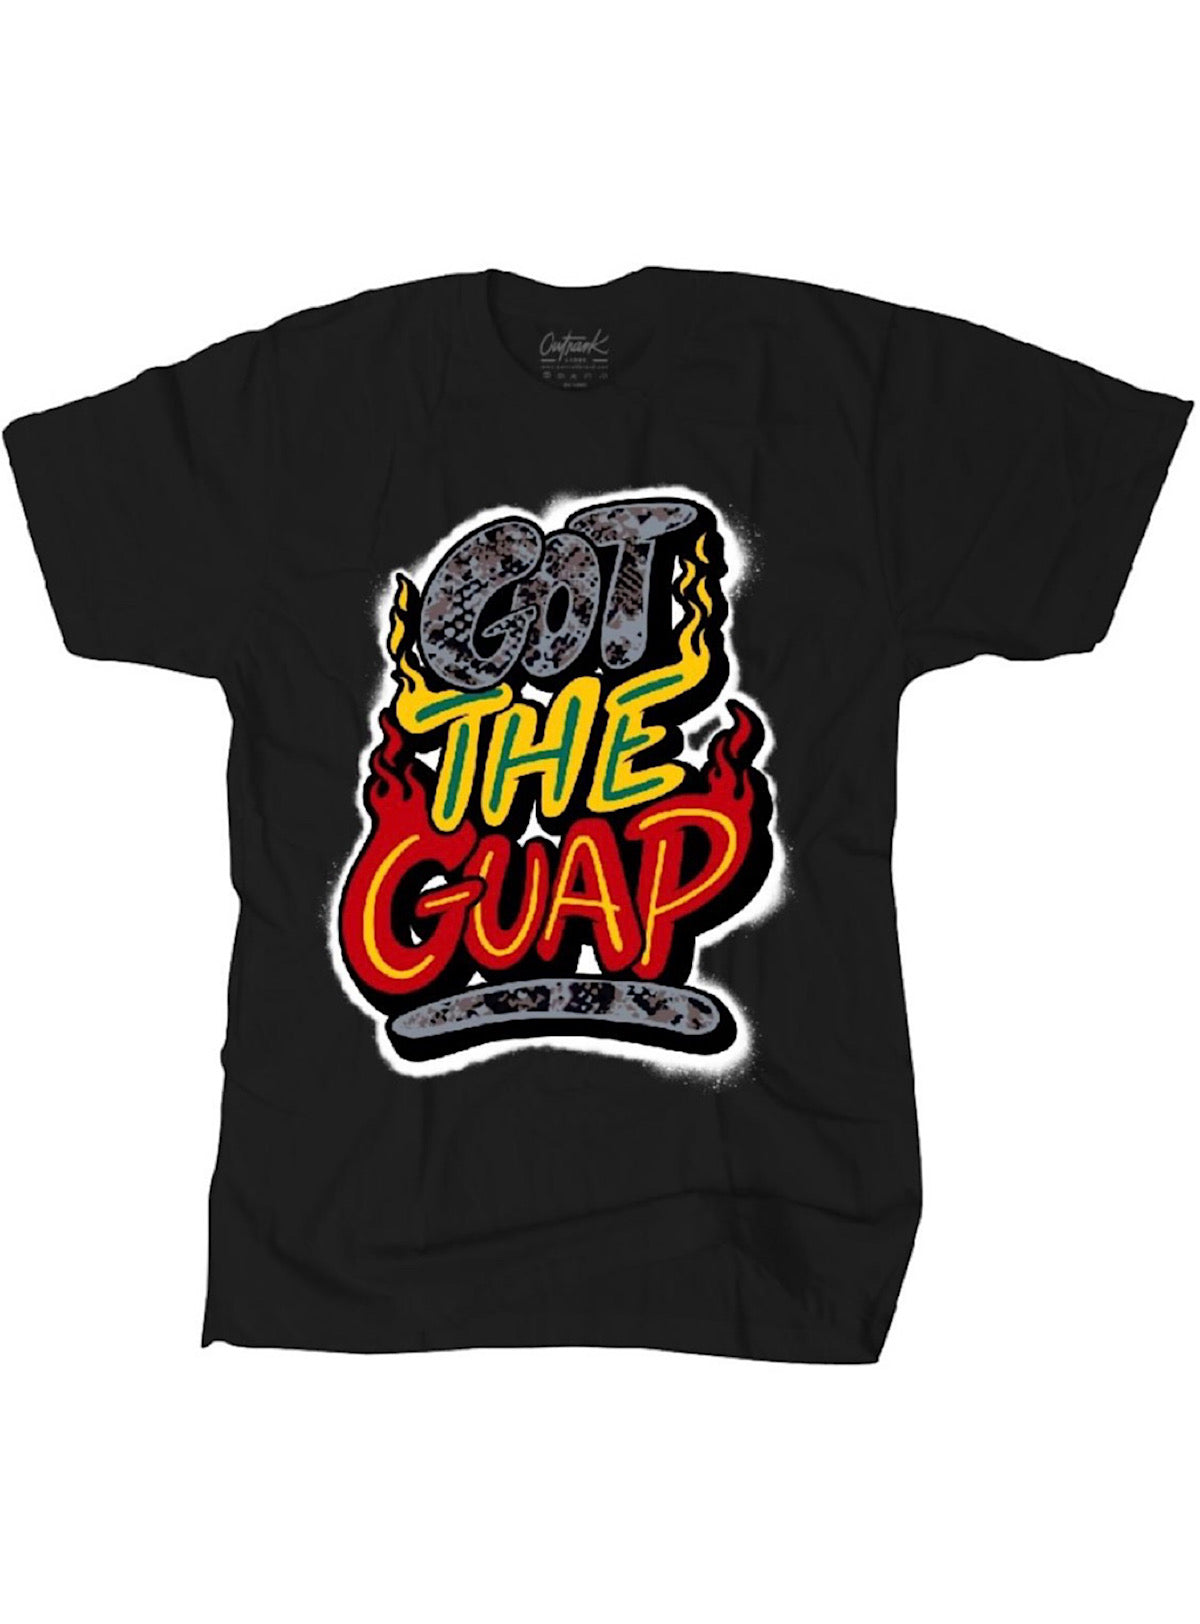 Outrank T-Shirt - Got The Guap - Black - OR1182